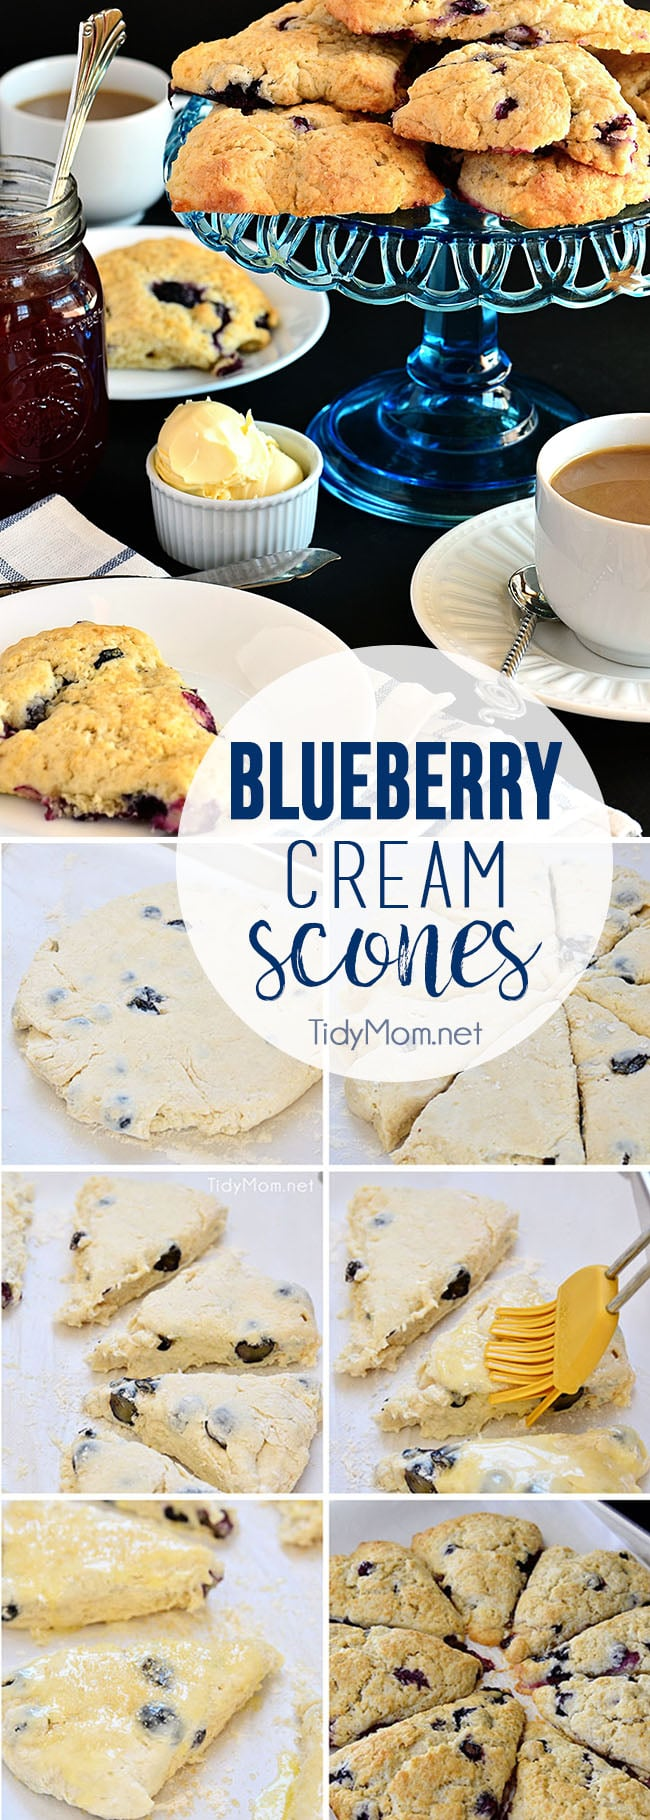 Blueberry Cream Scones really come together so quickly, they are bursting with sweet and juicy blueberries and have a delicious sugar topping and a nice tender crumb. Print the recipe at TidyMom.net #scones #blueberry #breakfast